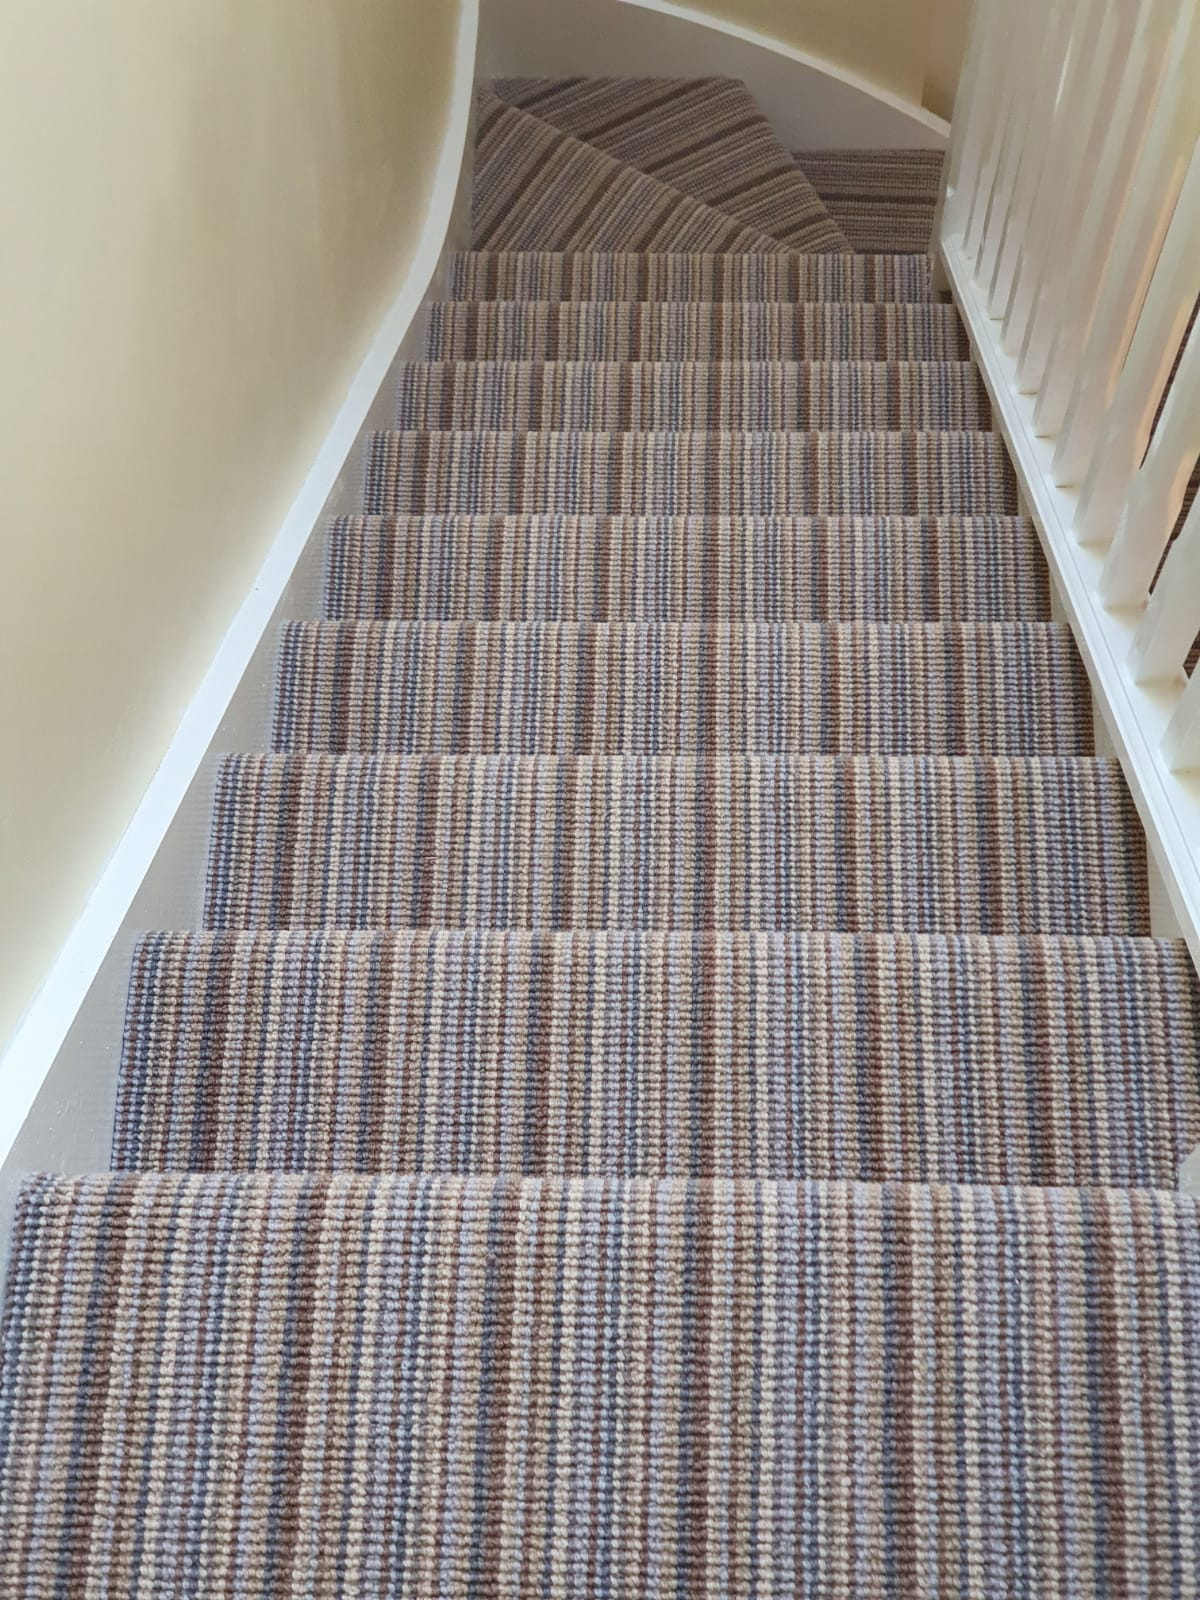 Blue & Brown Striped Carpet in Kensington 1